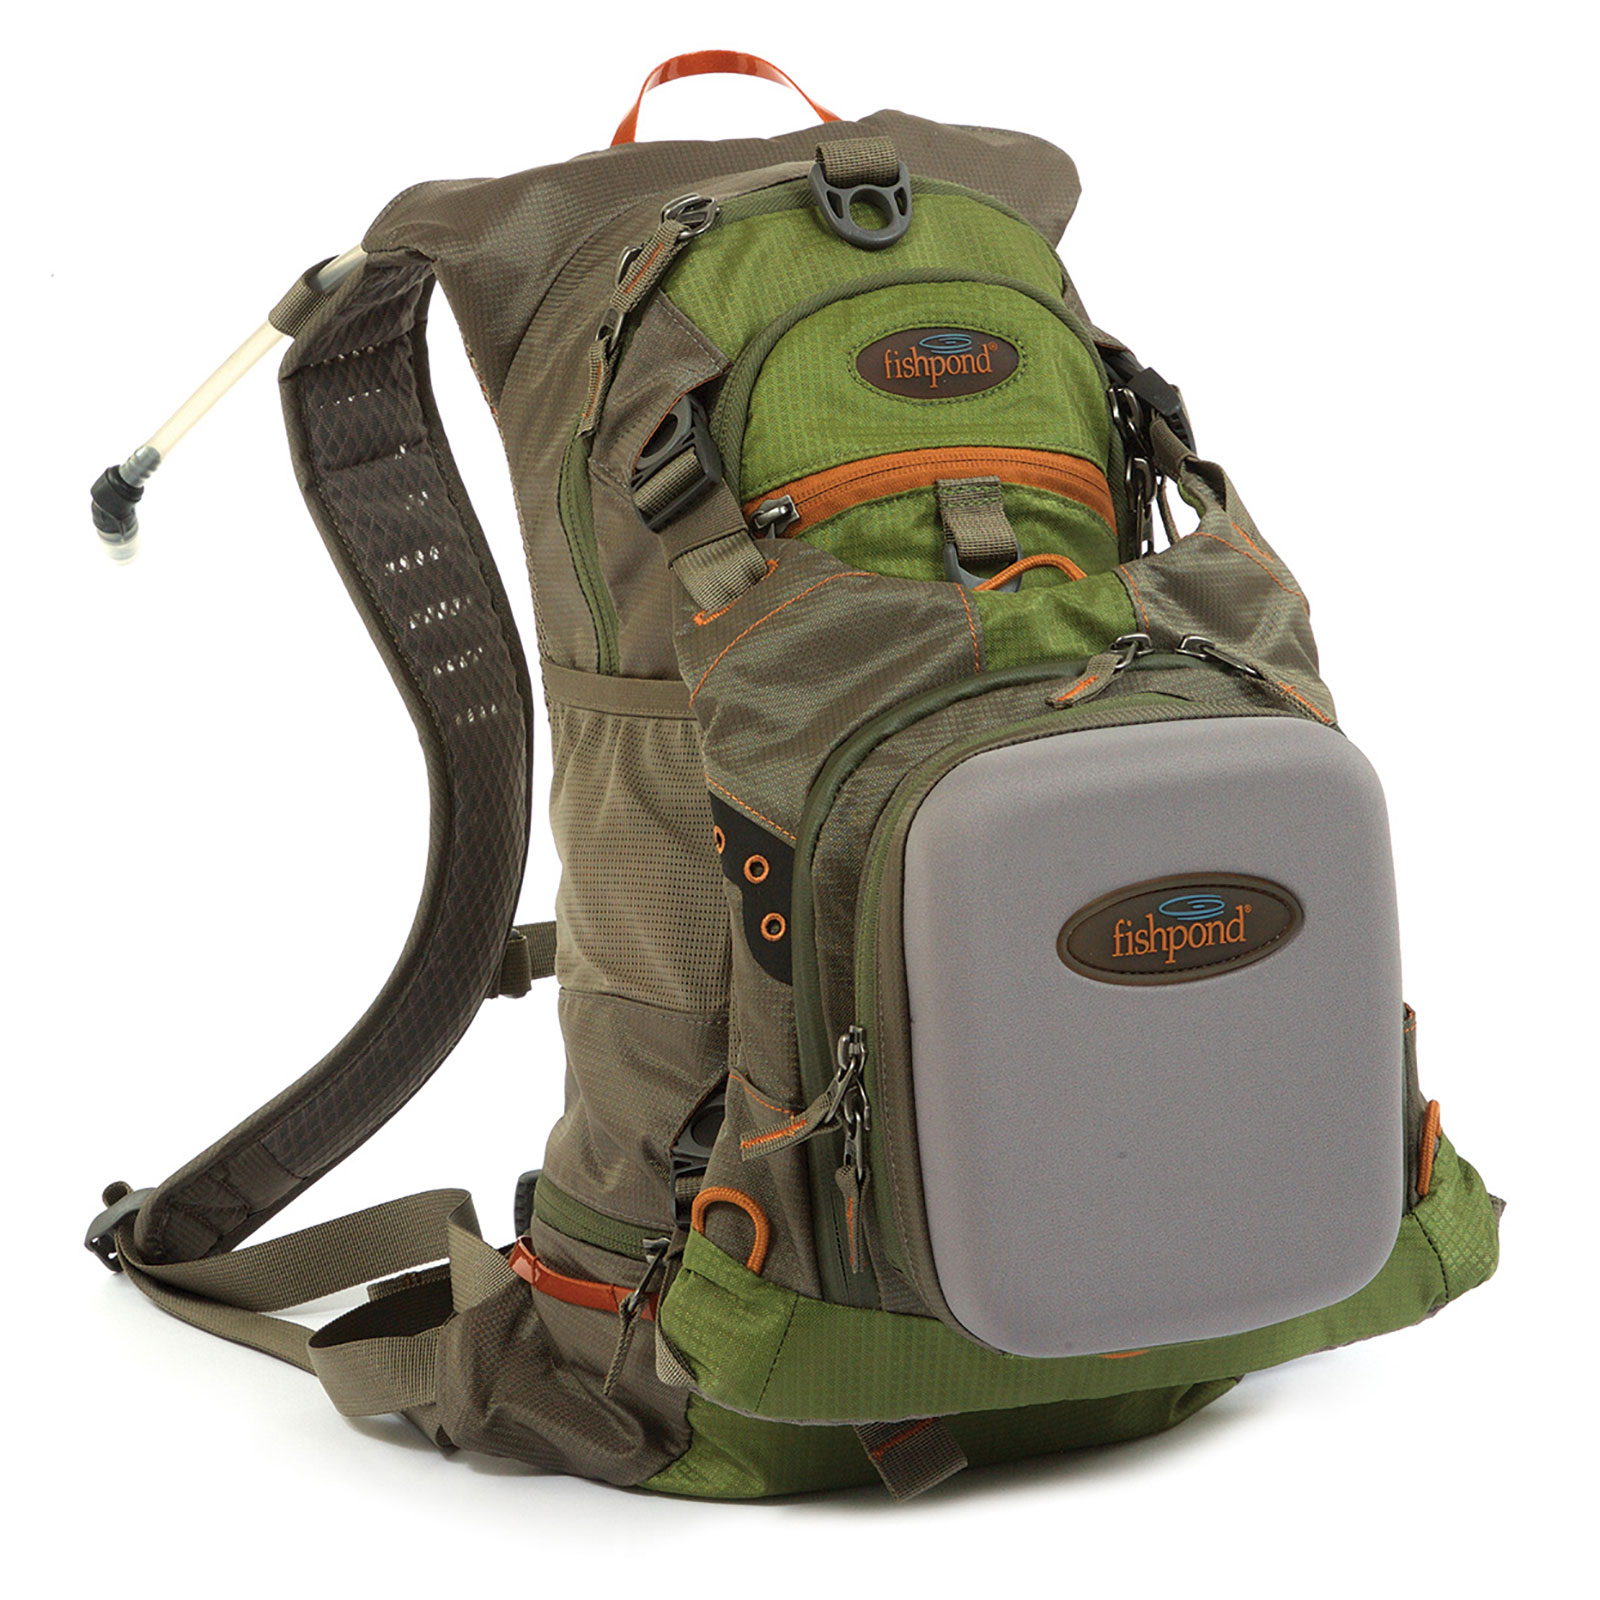 Fishpond oxbow chest backpack fly fishing pack modular for Fly fishing bag